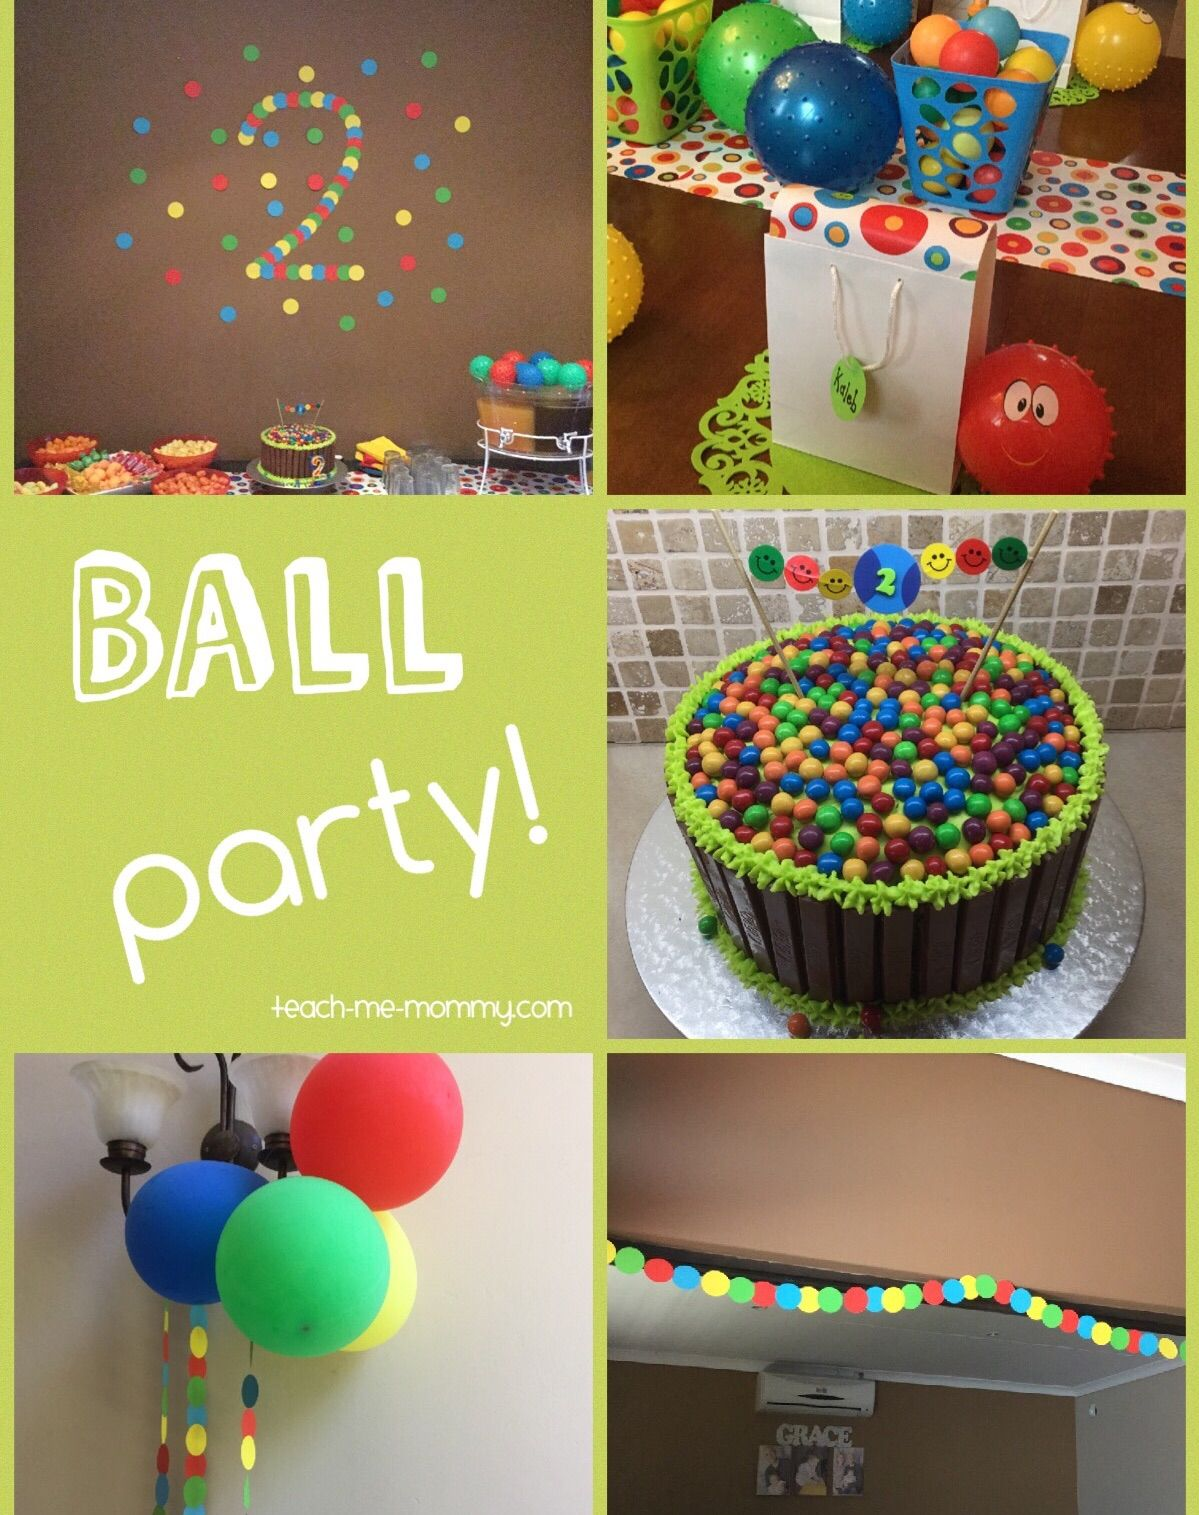 ball themed party for a 2 year old | kid blogger network activities